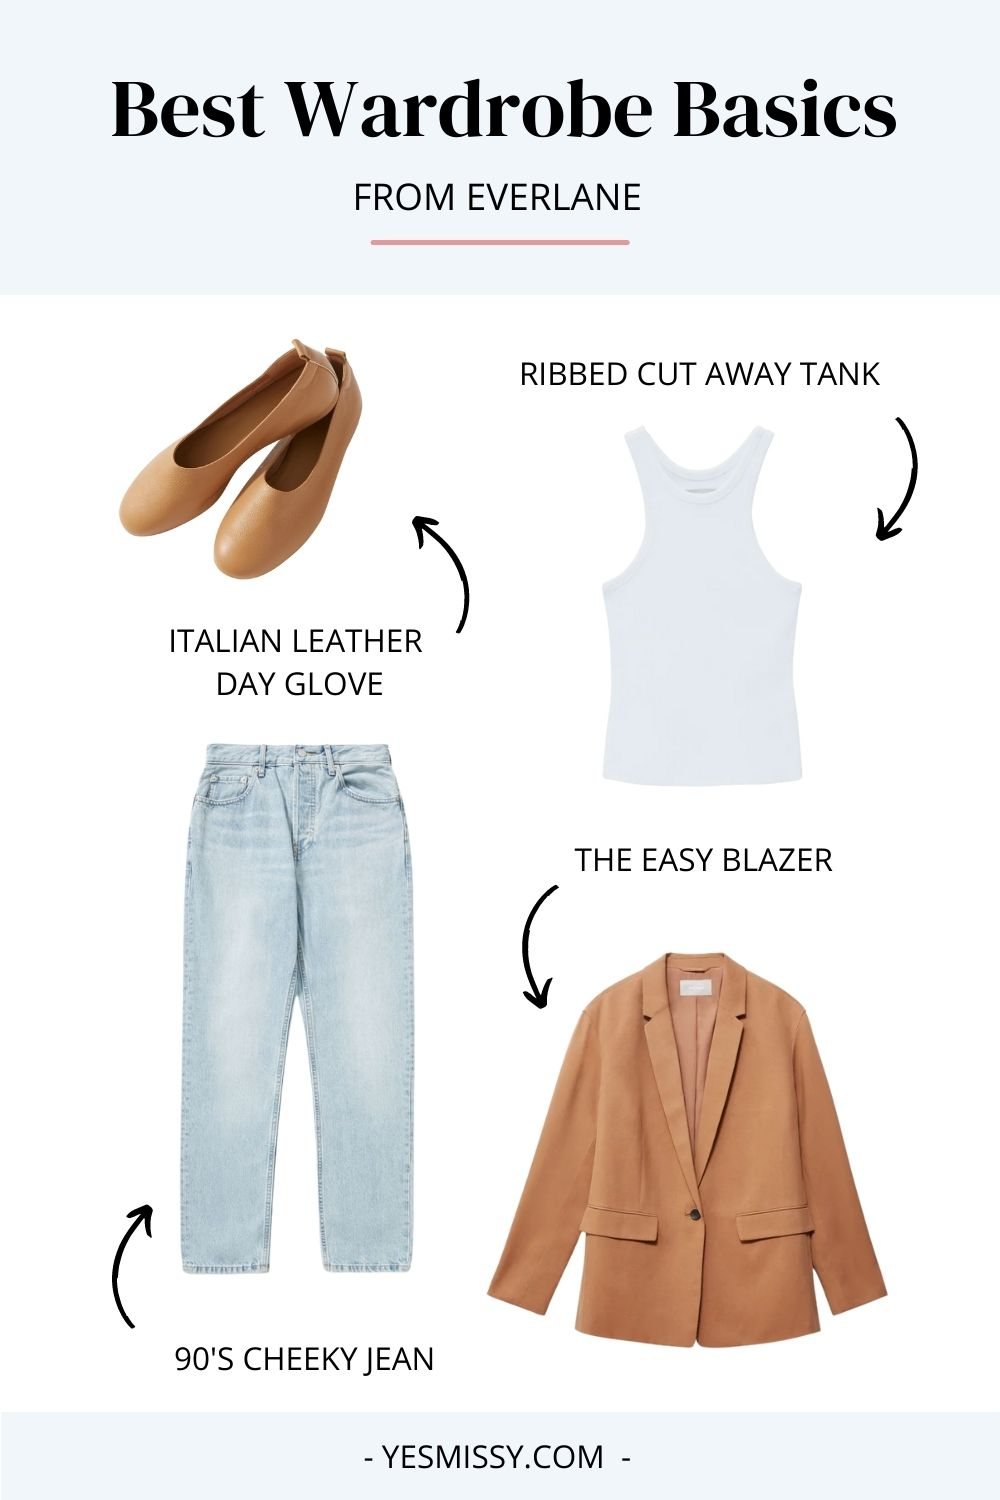 Best wardrobe essentials for women from Everlane - 90's cheeky jean, easy blazer, Italian leather glove flats, ribbed tank.